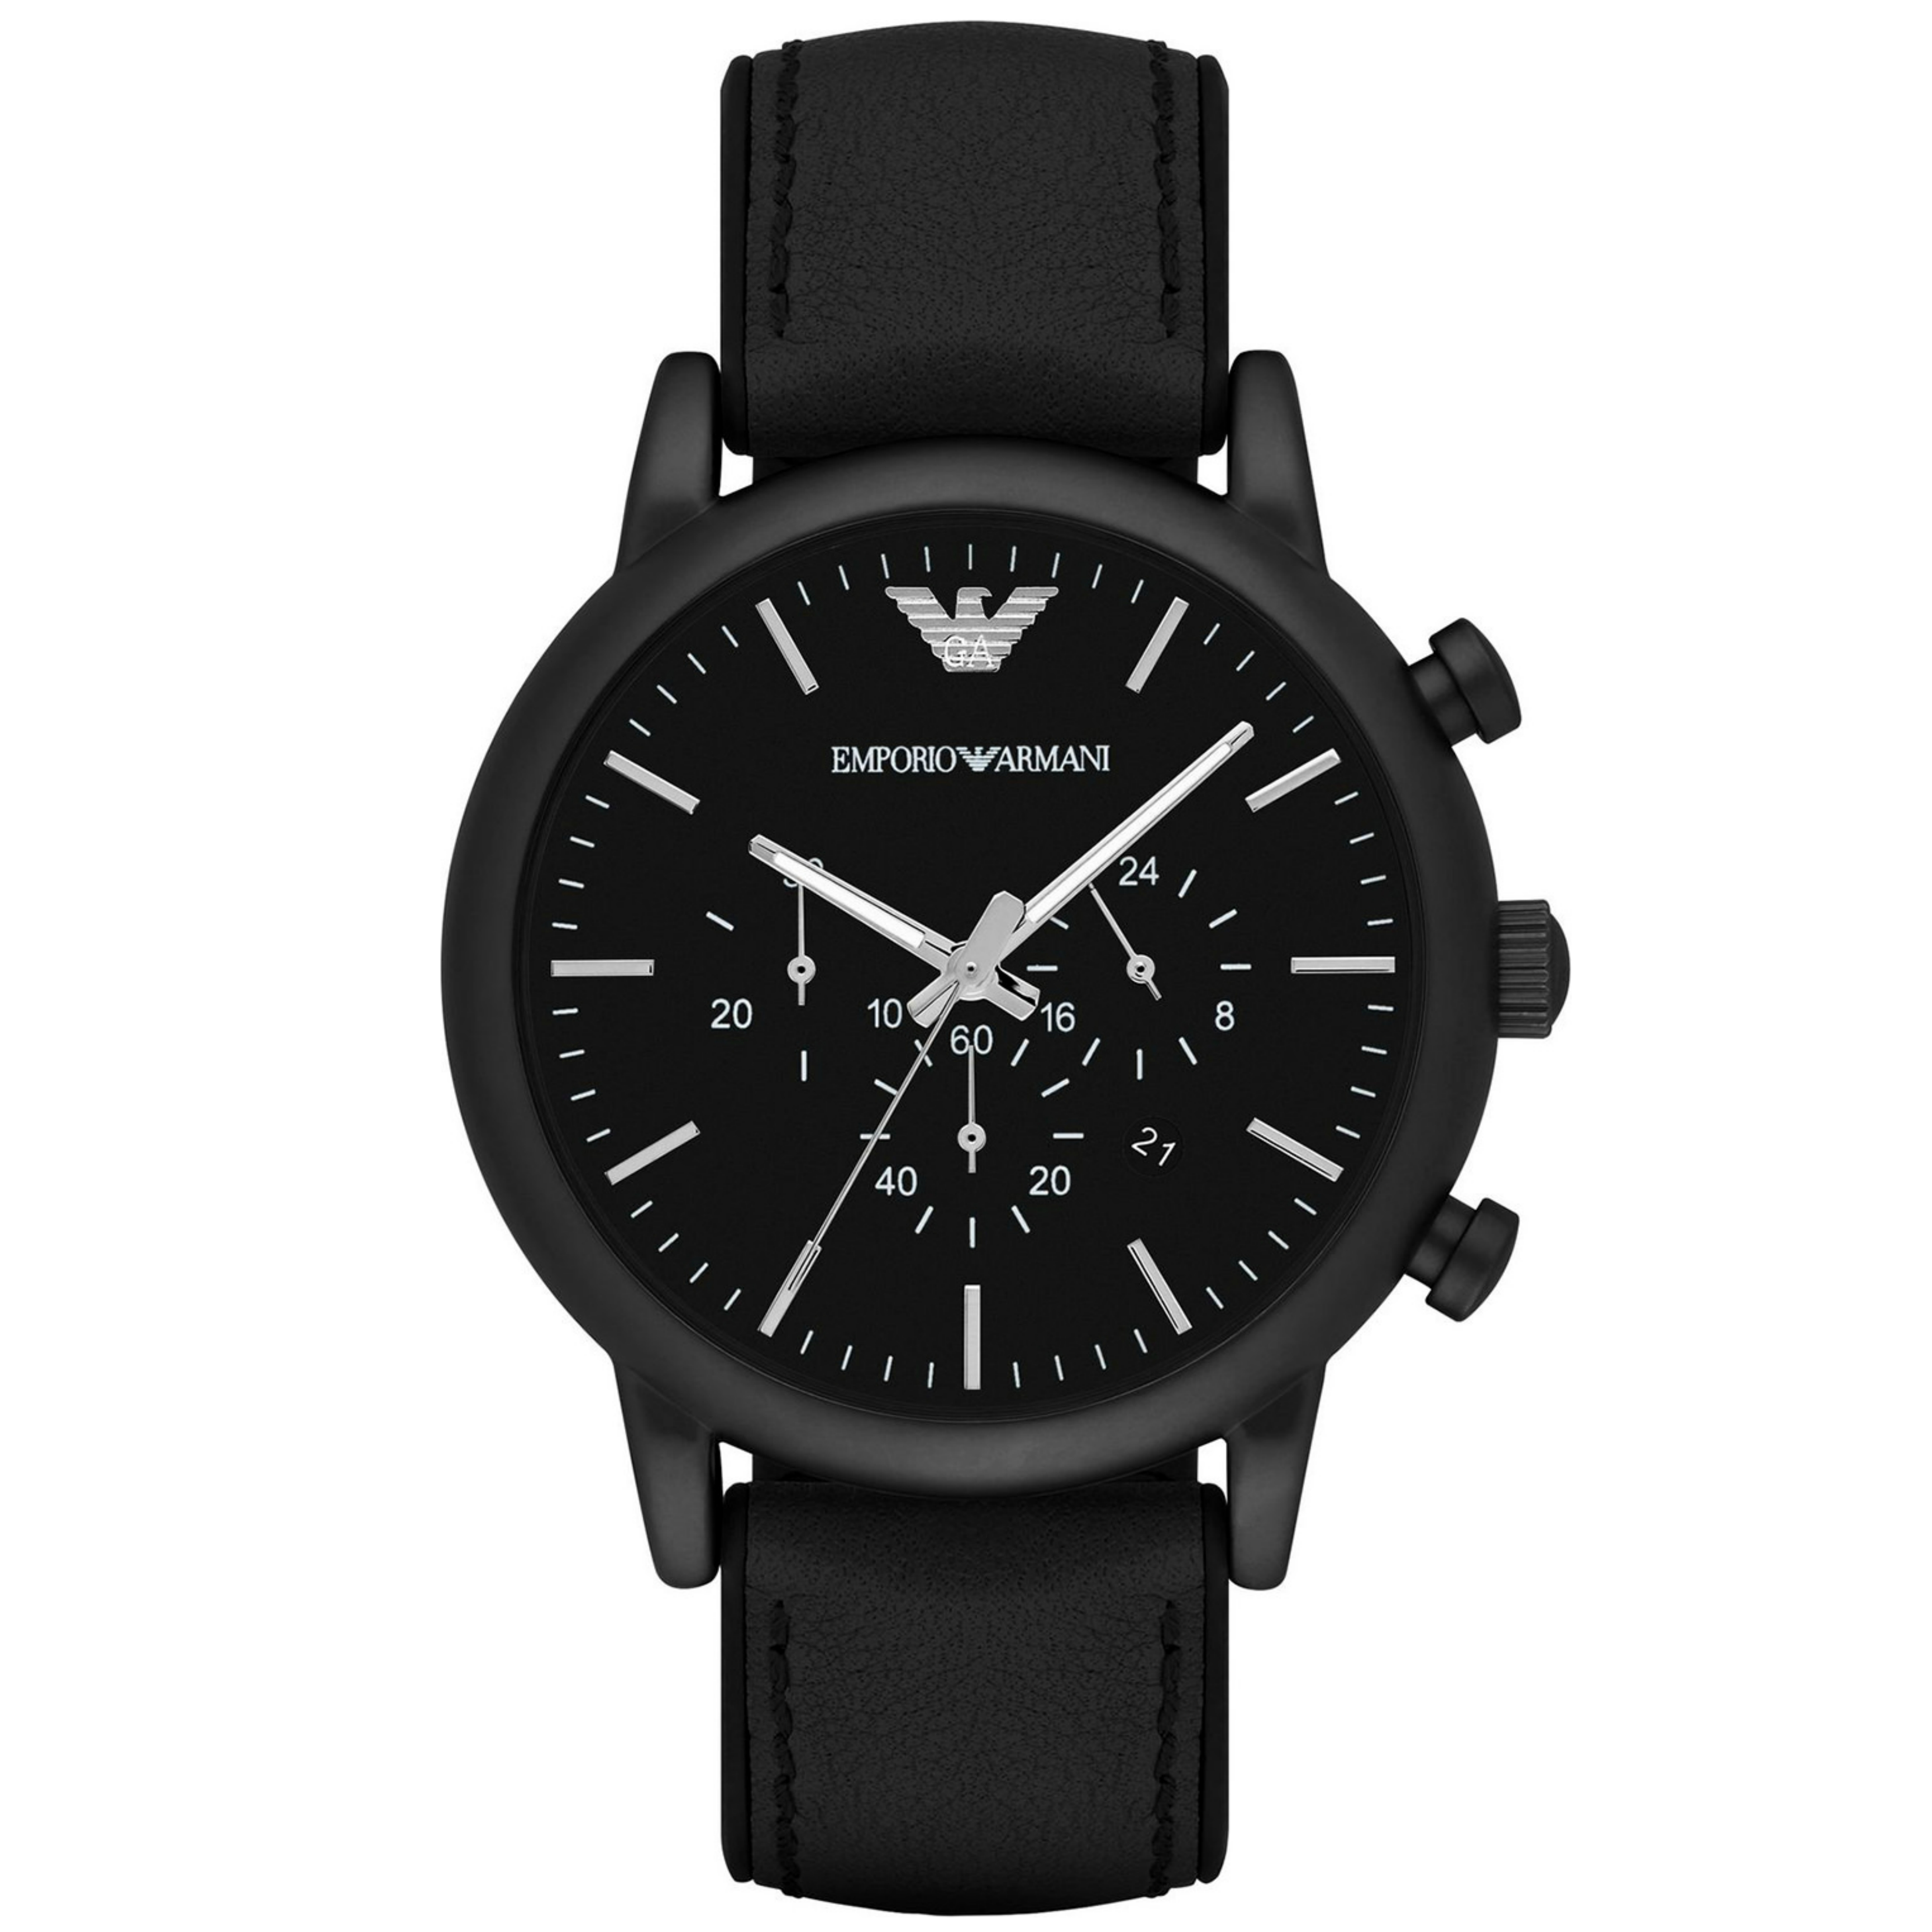 Emporio Armani Luigi Men's Watch|Chronograph Black Dial|Leather Strap Band|1970